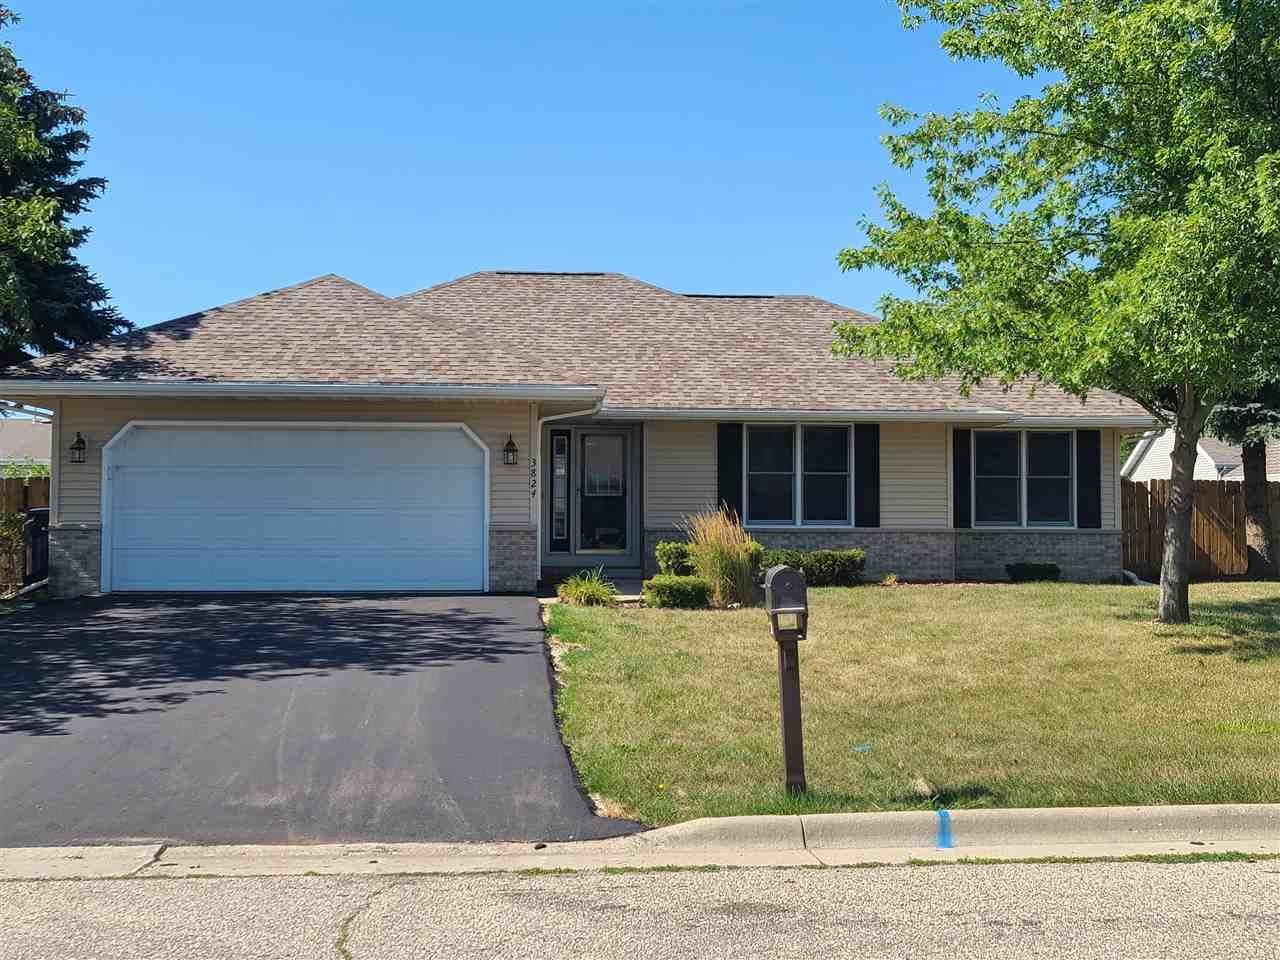 3824 Pintail Dr, Janesville, WI 53546 - #: 1916344